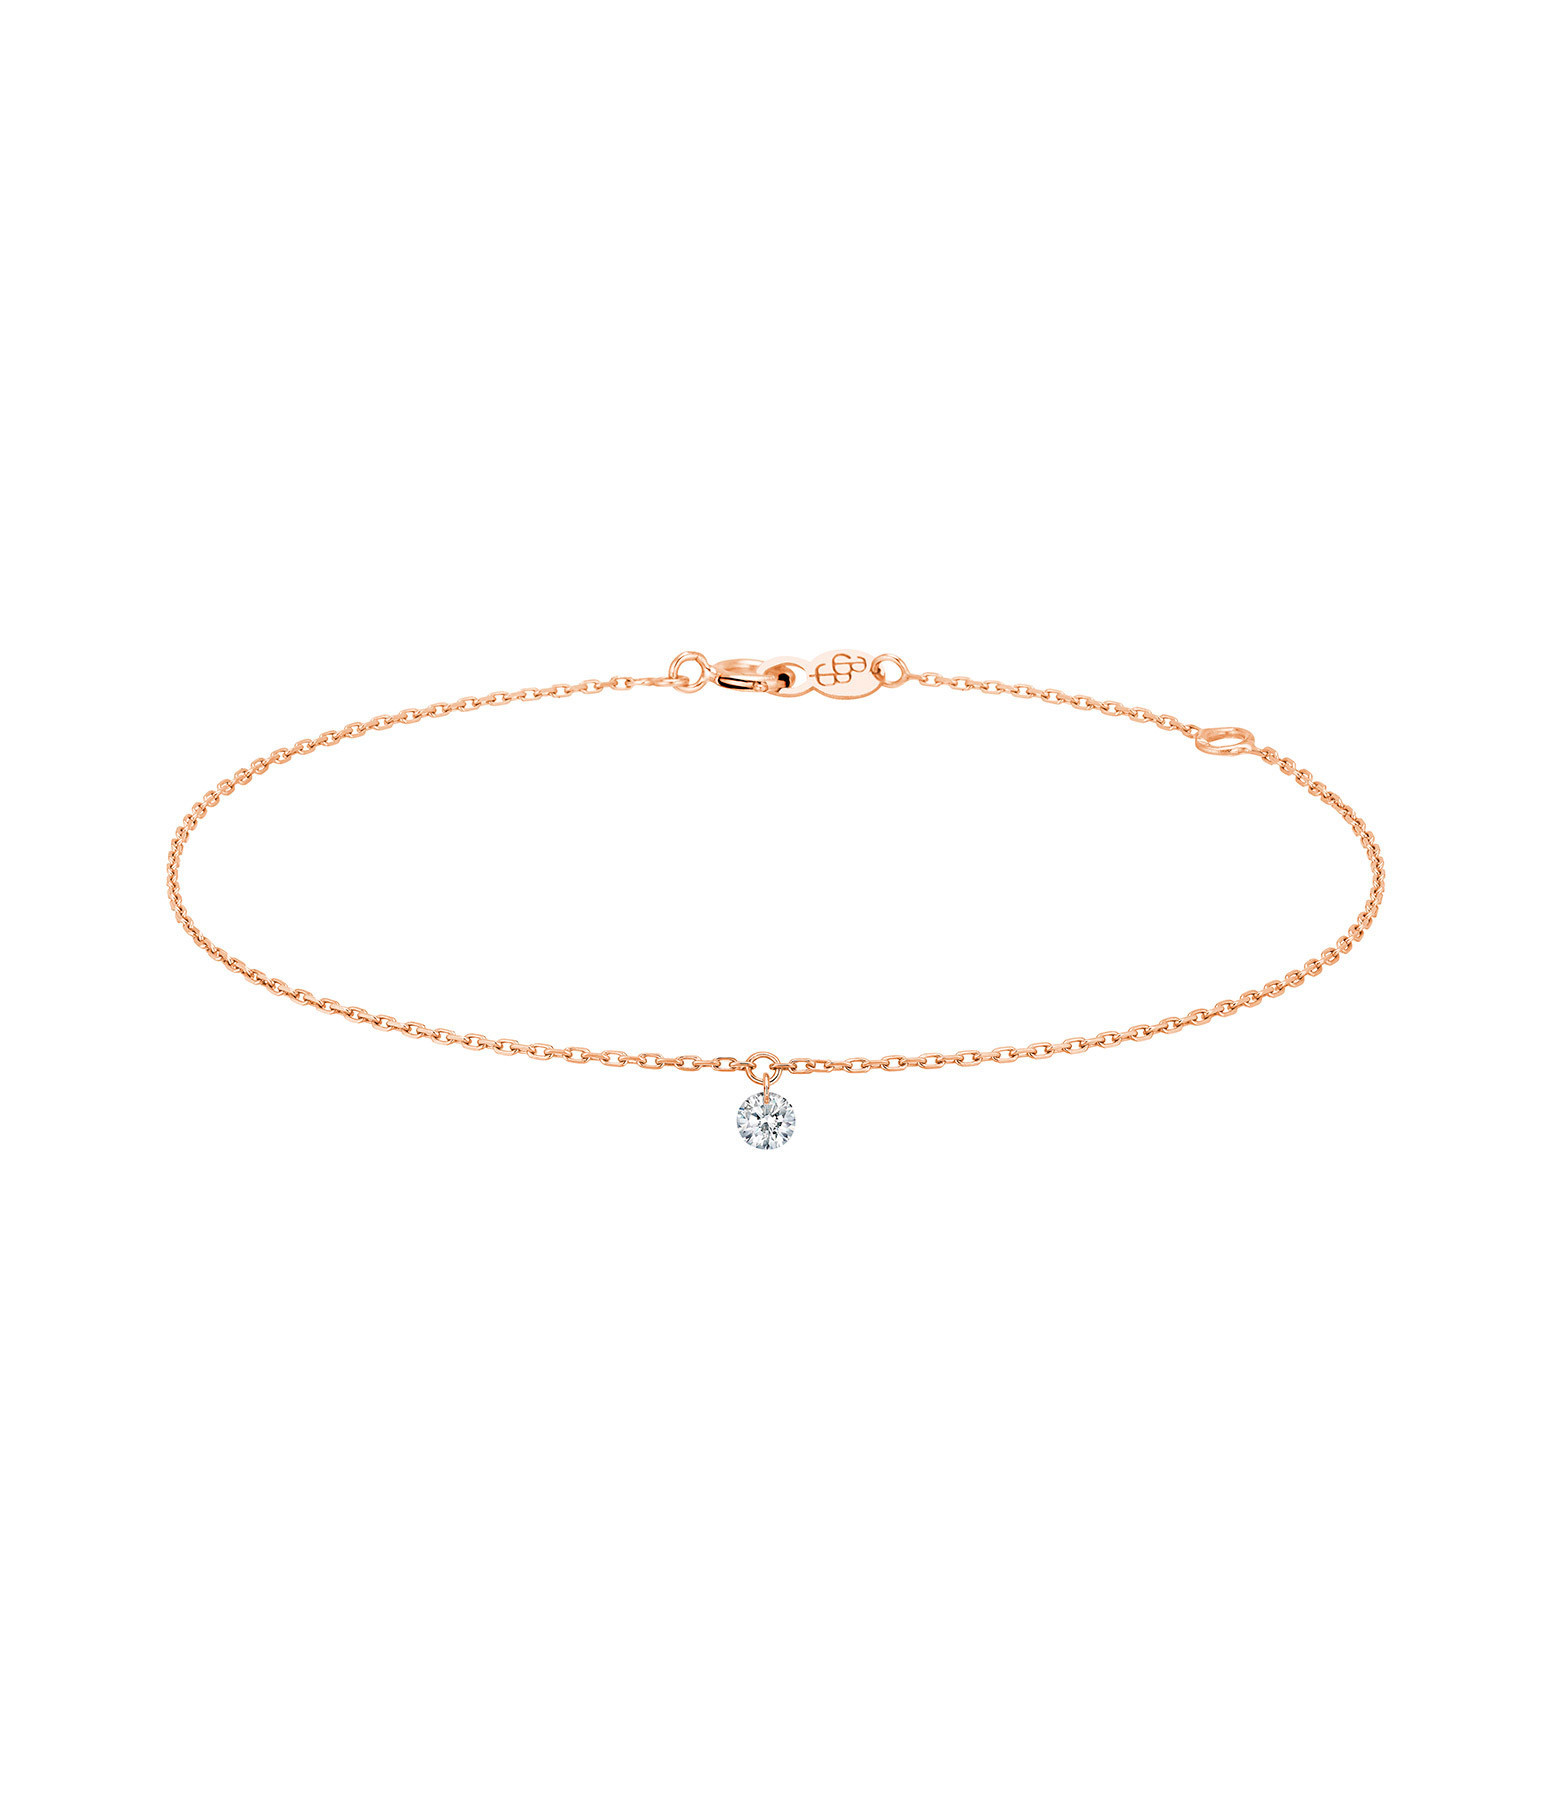 LA BRUNE & LA BLONDE - Bracelet 360° Diamant Brillant 0,07 Or Rose